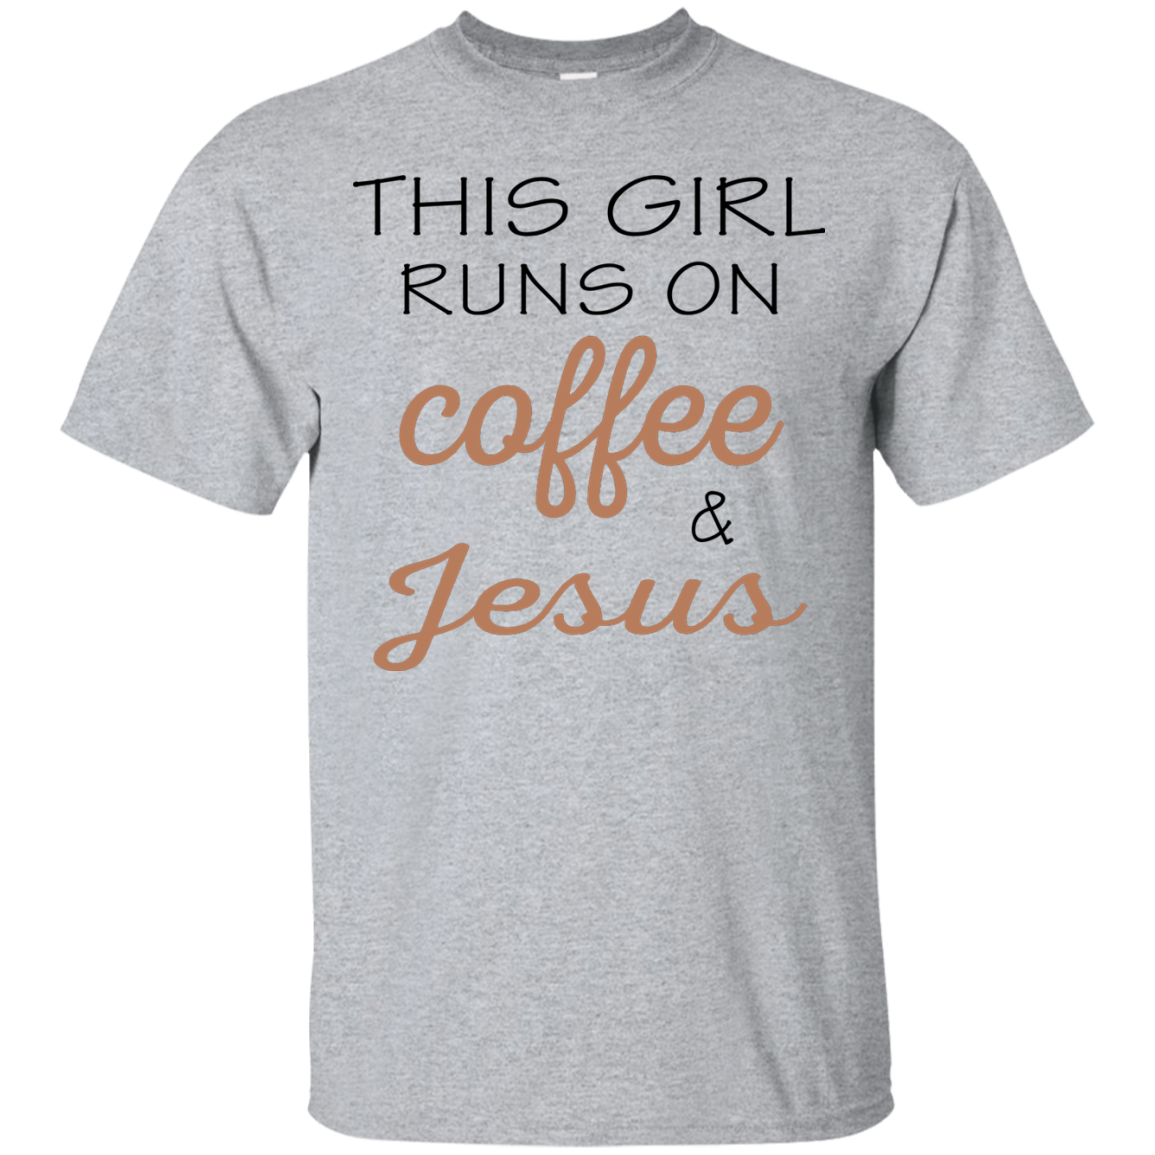 This girl runs on coffee & jesus, T shirt